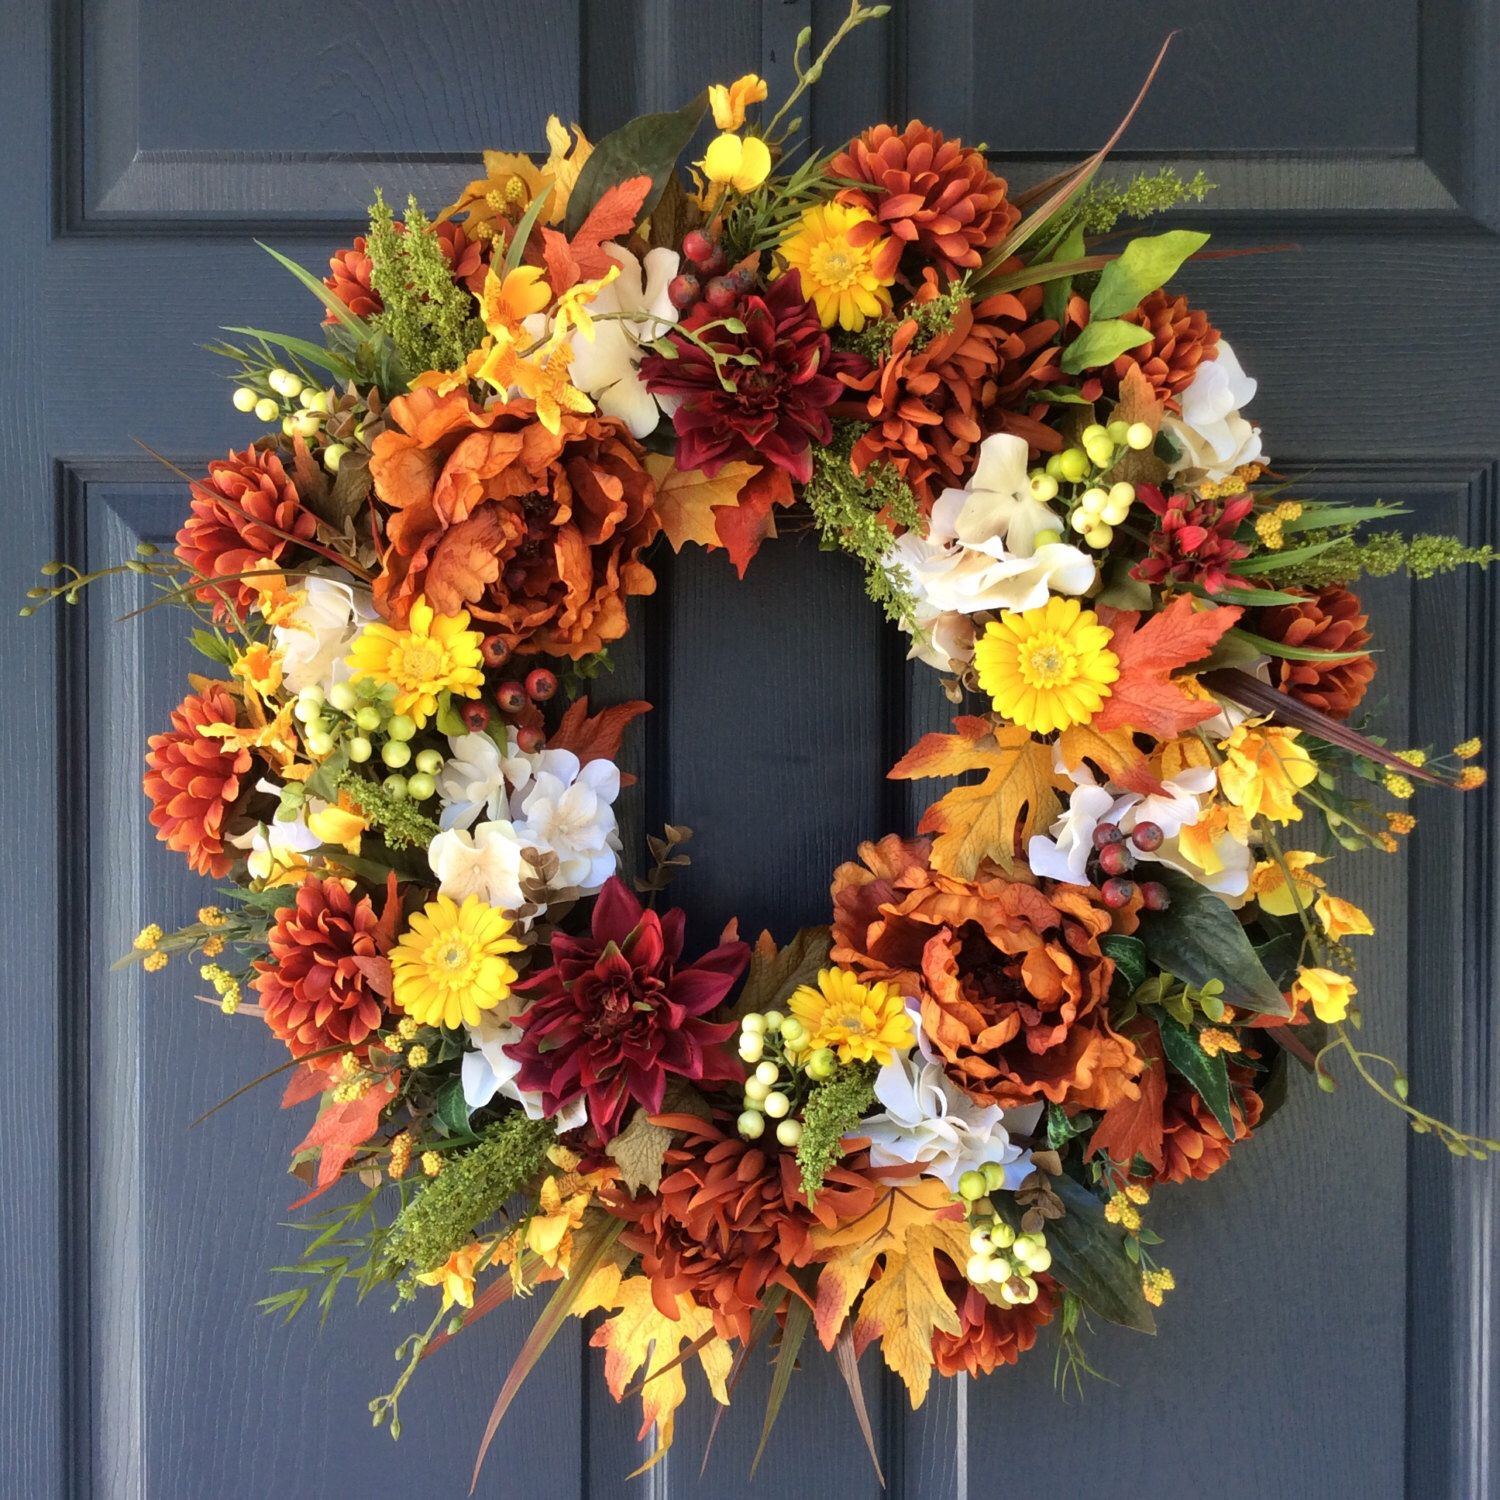 AUTUMN WREATH Fall Wreaths Front Door Decor Harvest Decor Wreaths Hydrangea